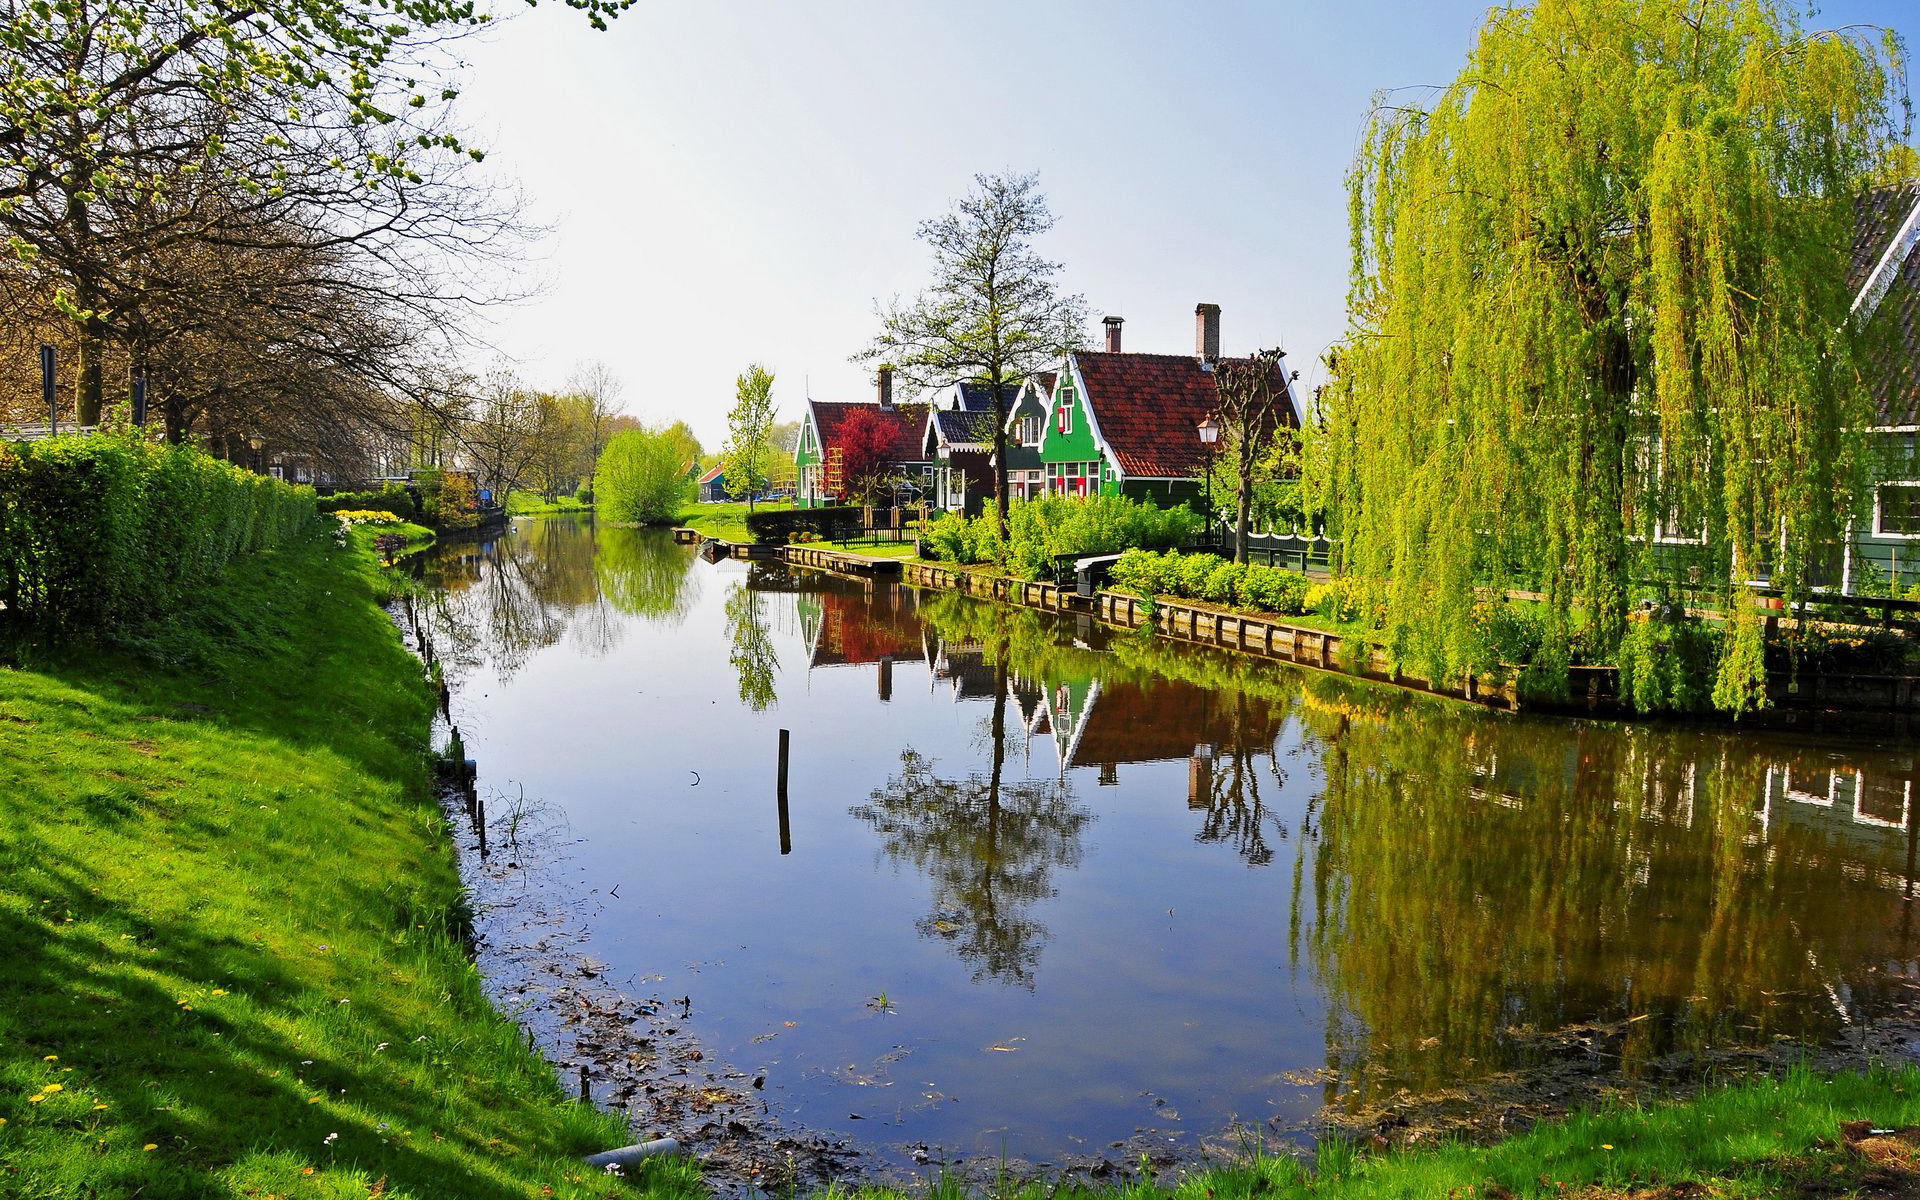 Canal in the village